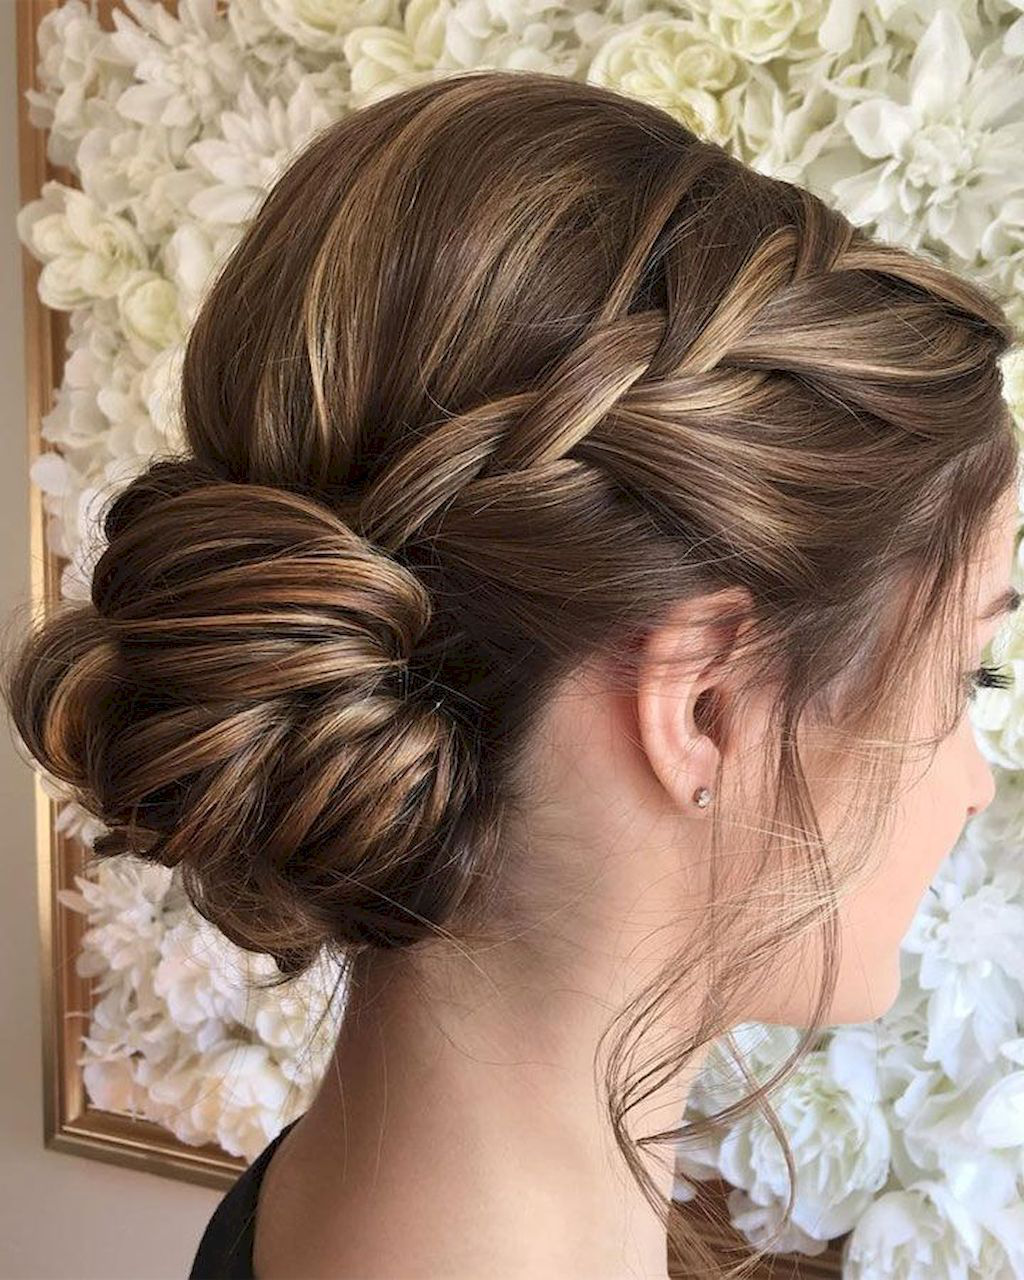 bridal wedding hairstyles for long hair that will inspire